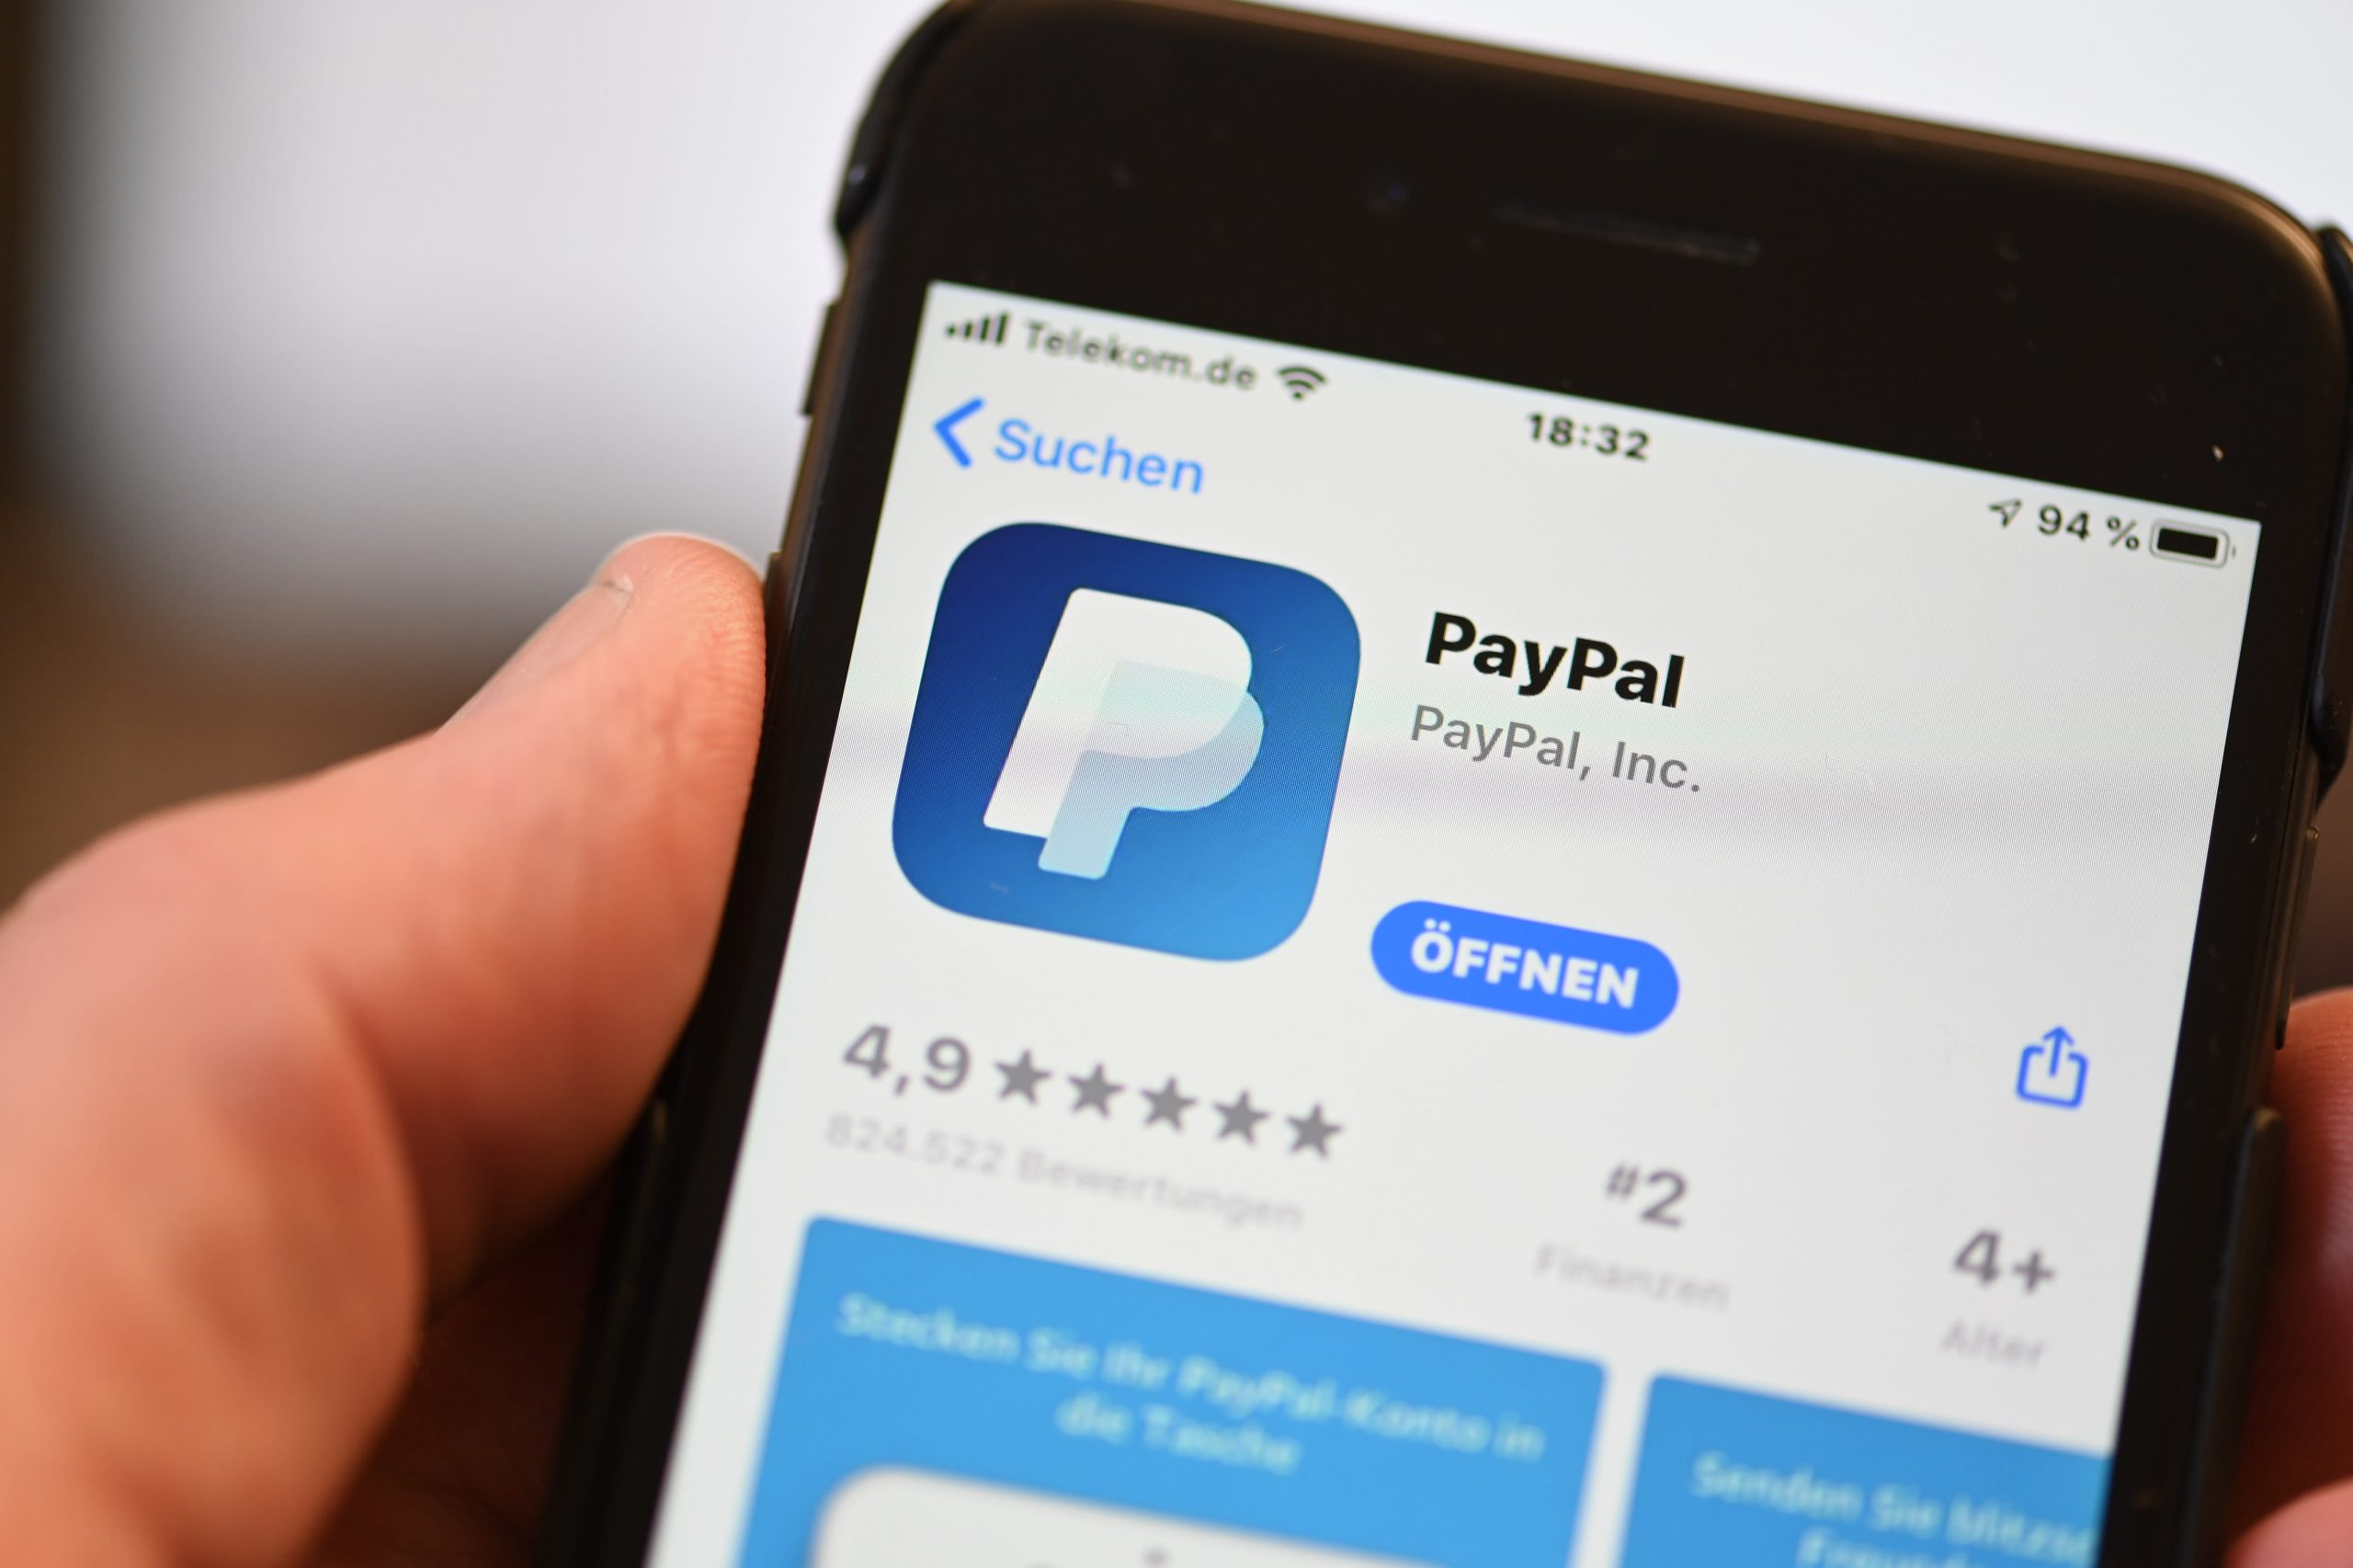 Square and PayPal may be the new whales in the crypto market as clients flock to buy bitcoin